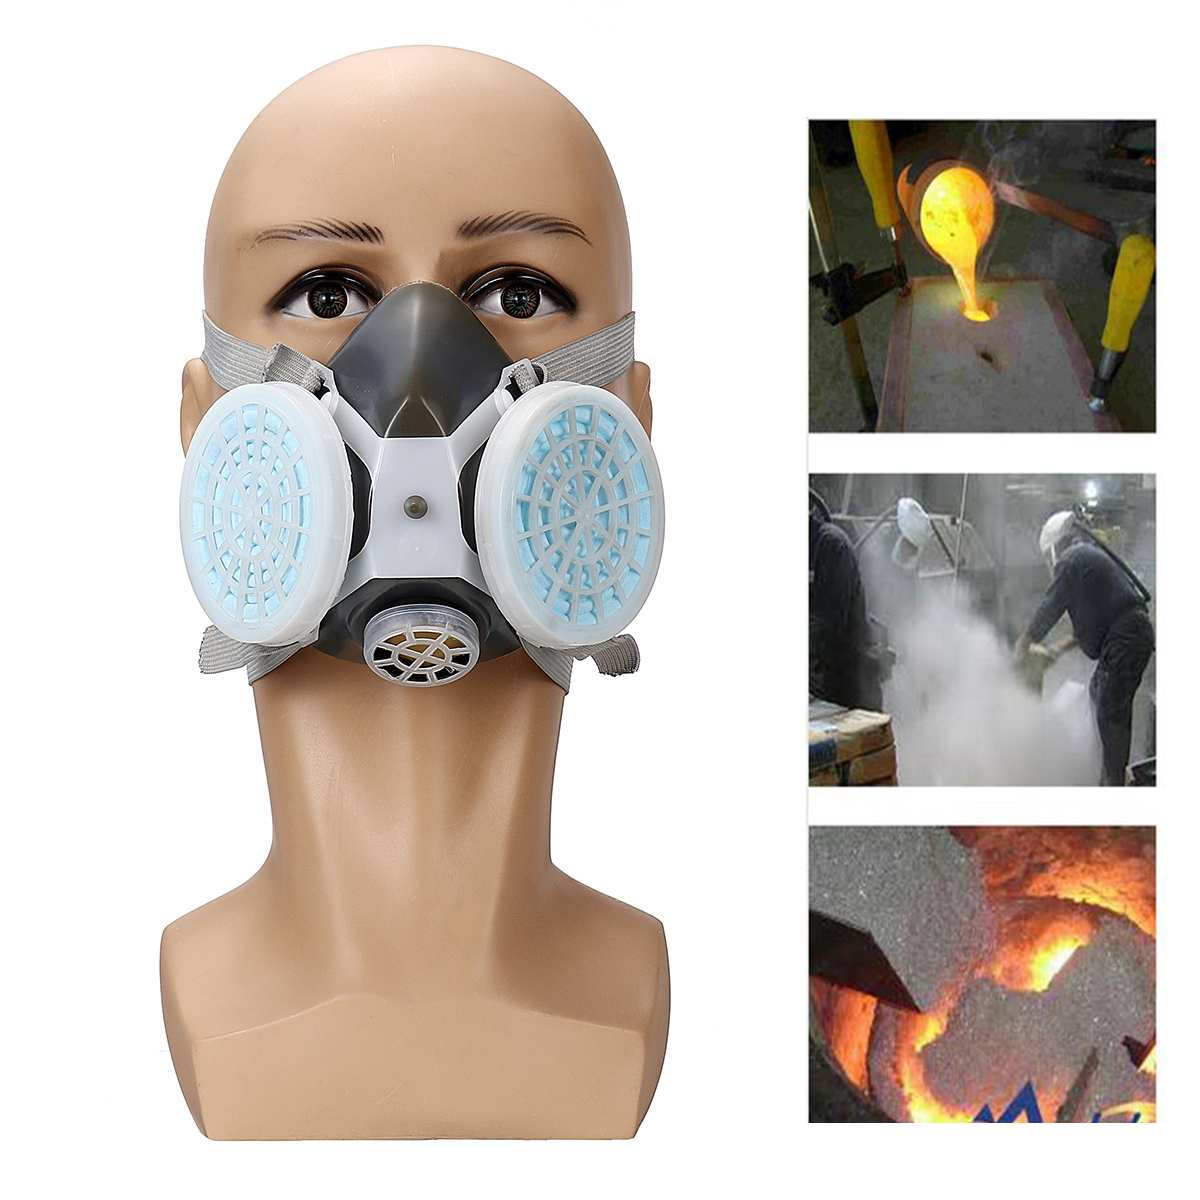 Masks 90 Percent Filter Industry Respirator Disposable Non-woven Protective Anti Fog Dust Pm2.5 Mask Hot Sale 2019 Workplace Safety Supplies